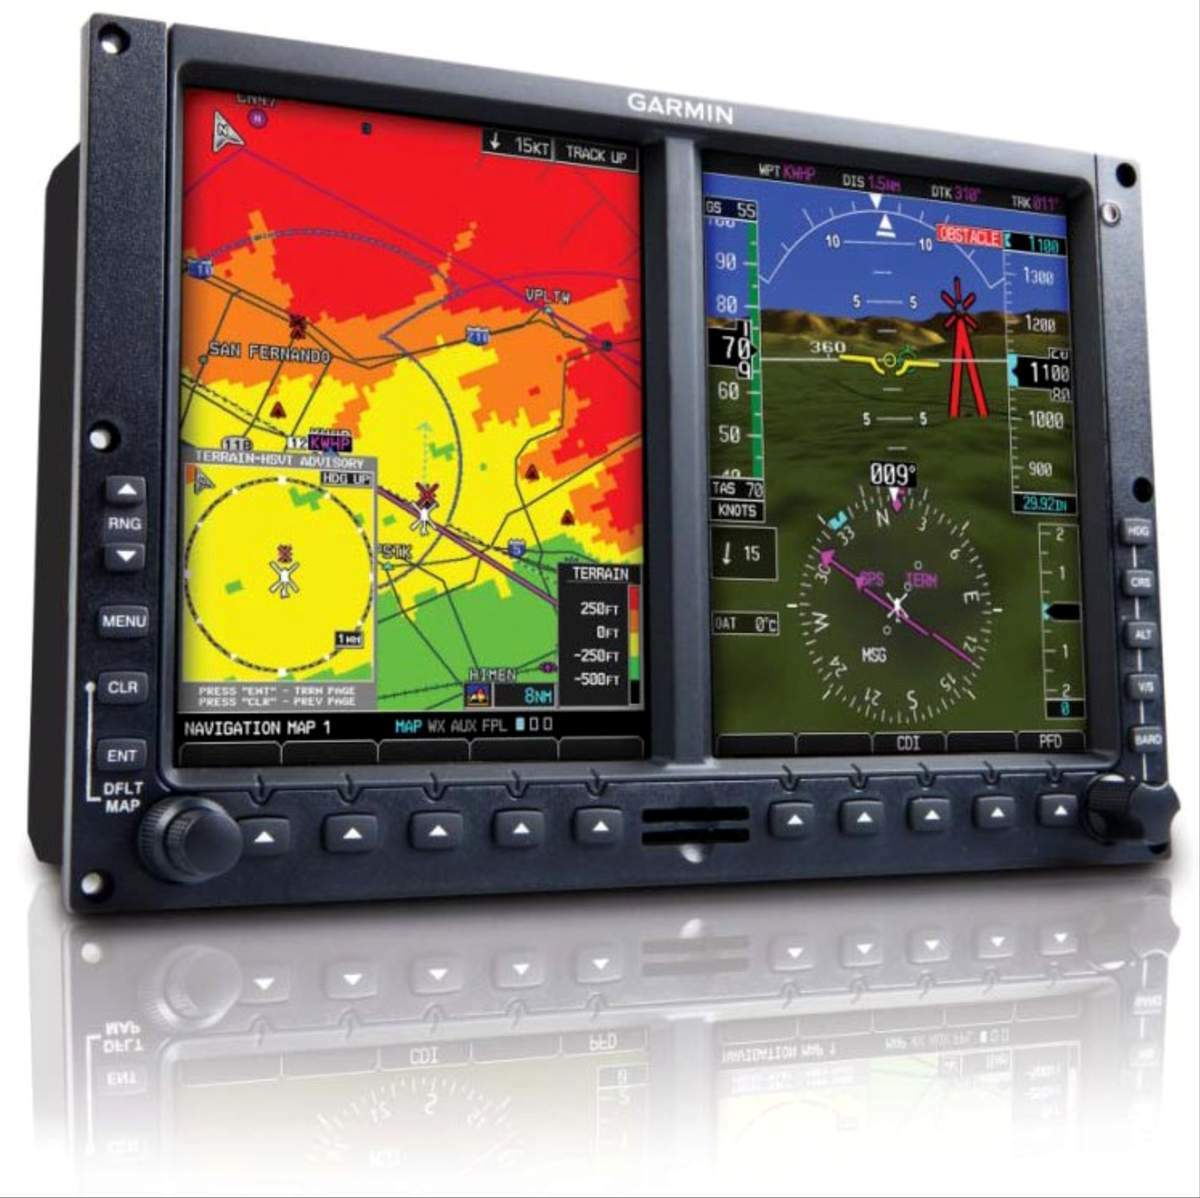 garmin gdu 460 installation manual